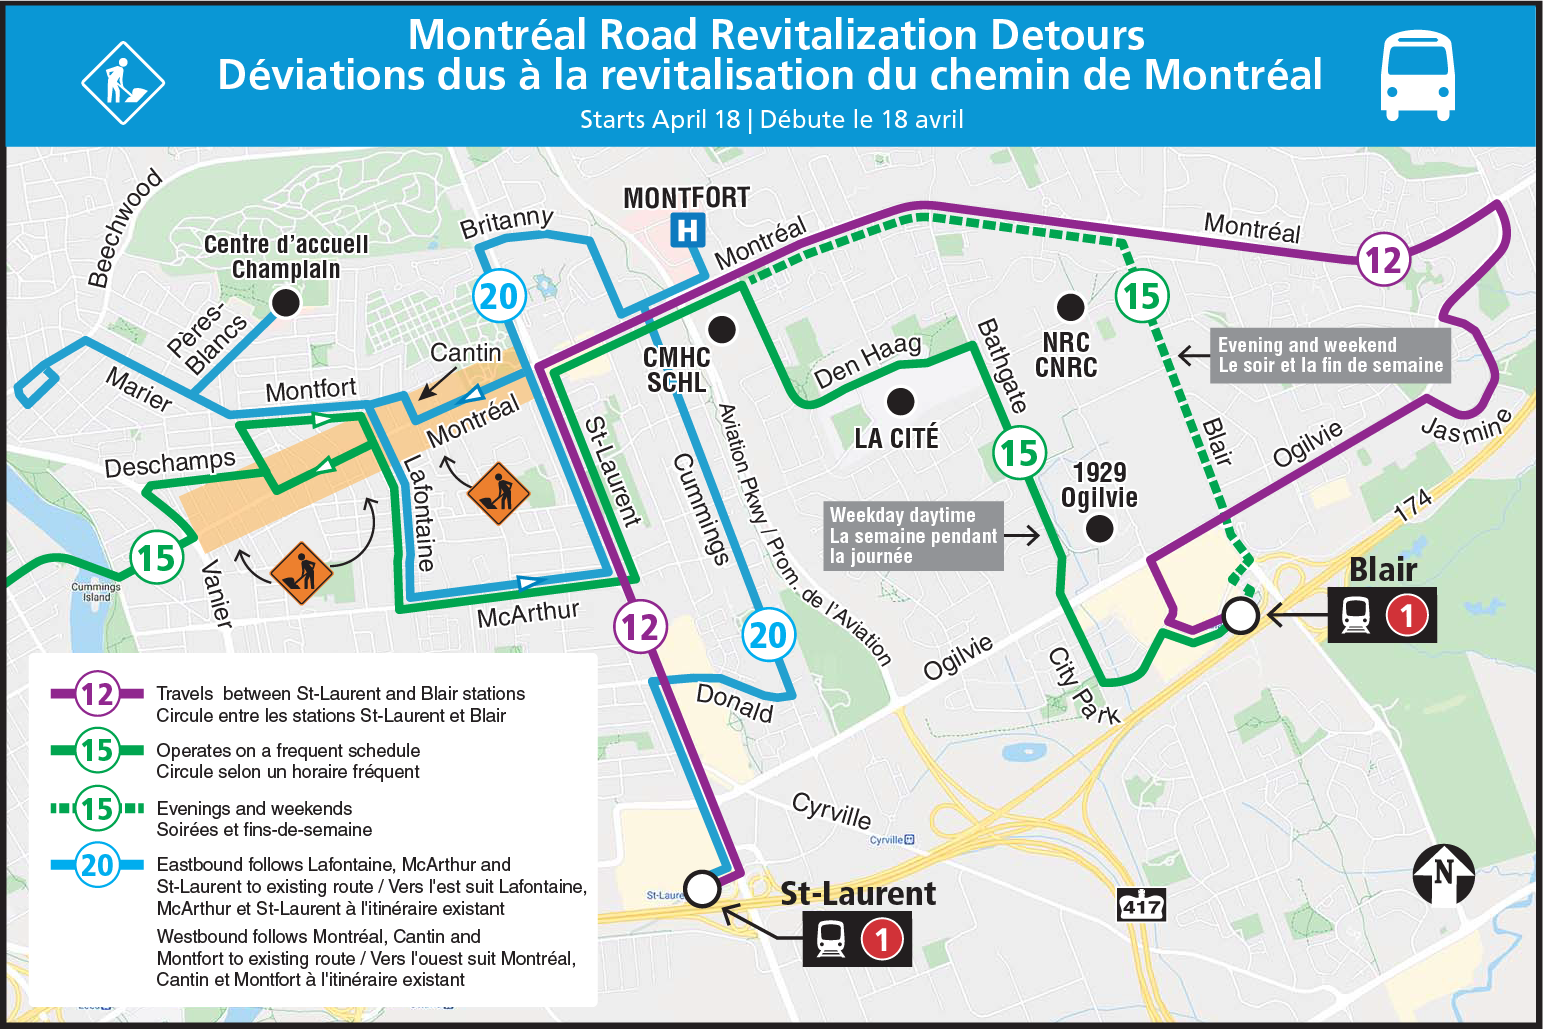 Full Montréal Road eastbound closure detour map, showing the detour routing for Routes 12, 15, and 20, as well as all of the bus stops being impacted by this detour for Routes 7, 9, 12, 15, and 20.